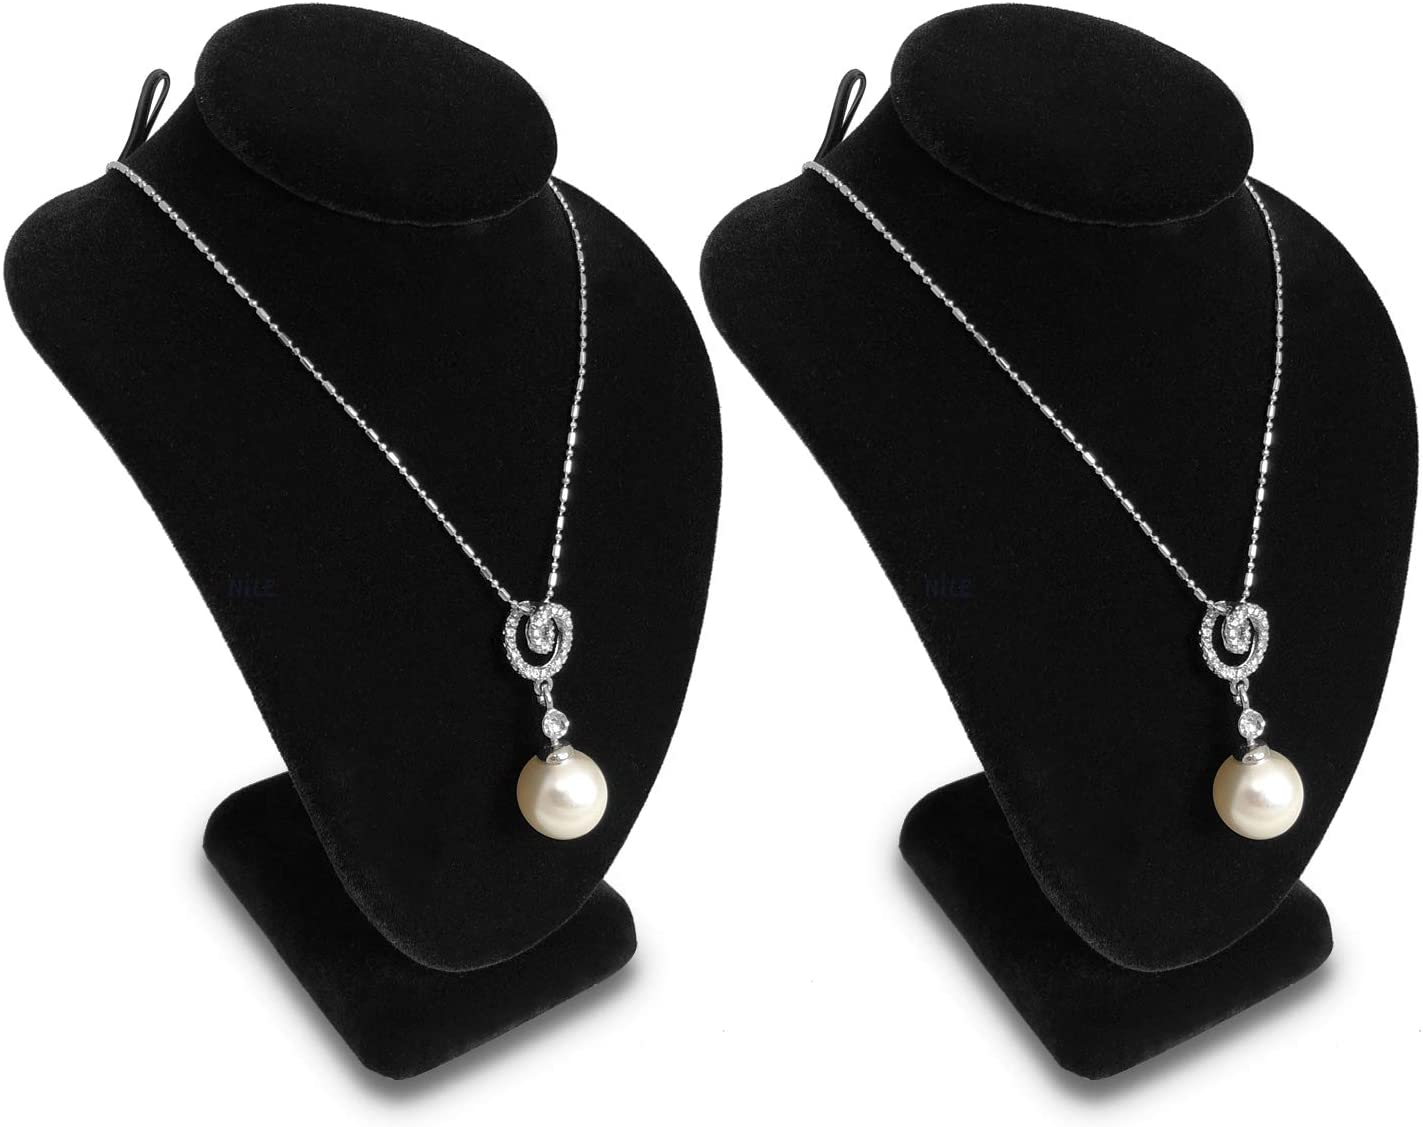 """MOOCA 2 Pcs Set Small Necklace Chain Jewelry Bust Display Holder Stand, Velvet Necklaces Display Necklace Mannequin, Necklace Bust, Jewelry Bust Stand 6 1/4""""H, Black Velvet"""